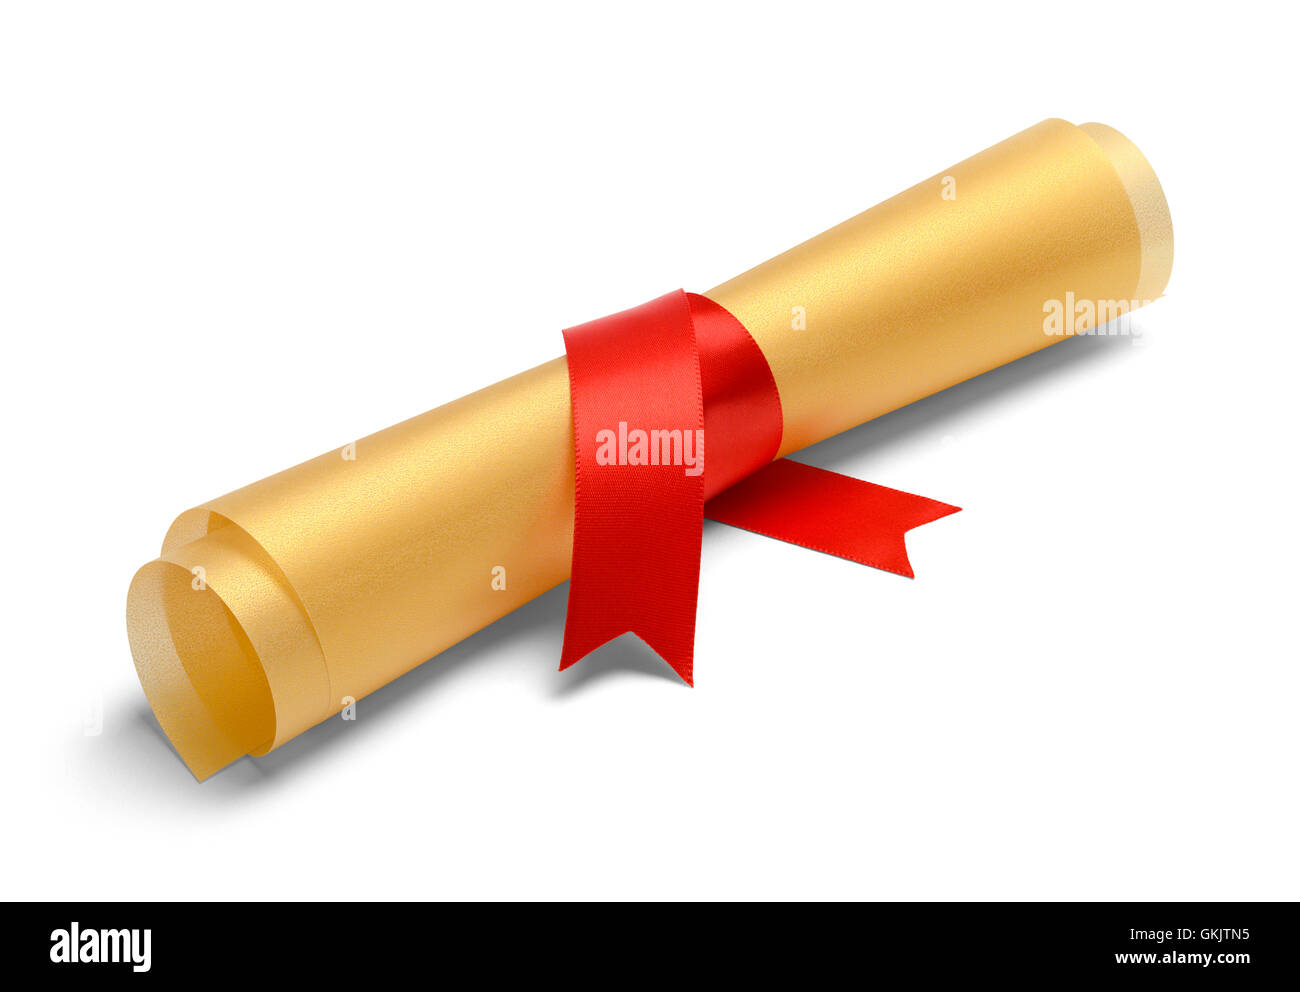 Golden College Degree with Red Ribbon Isolated on White Background. - Stock Image